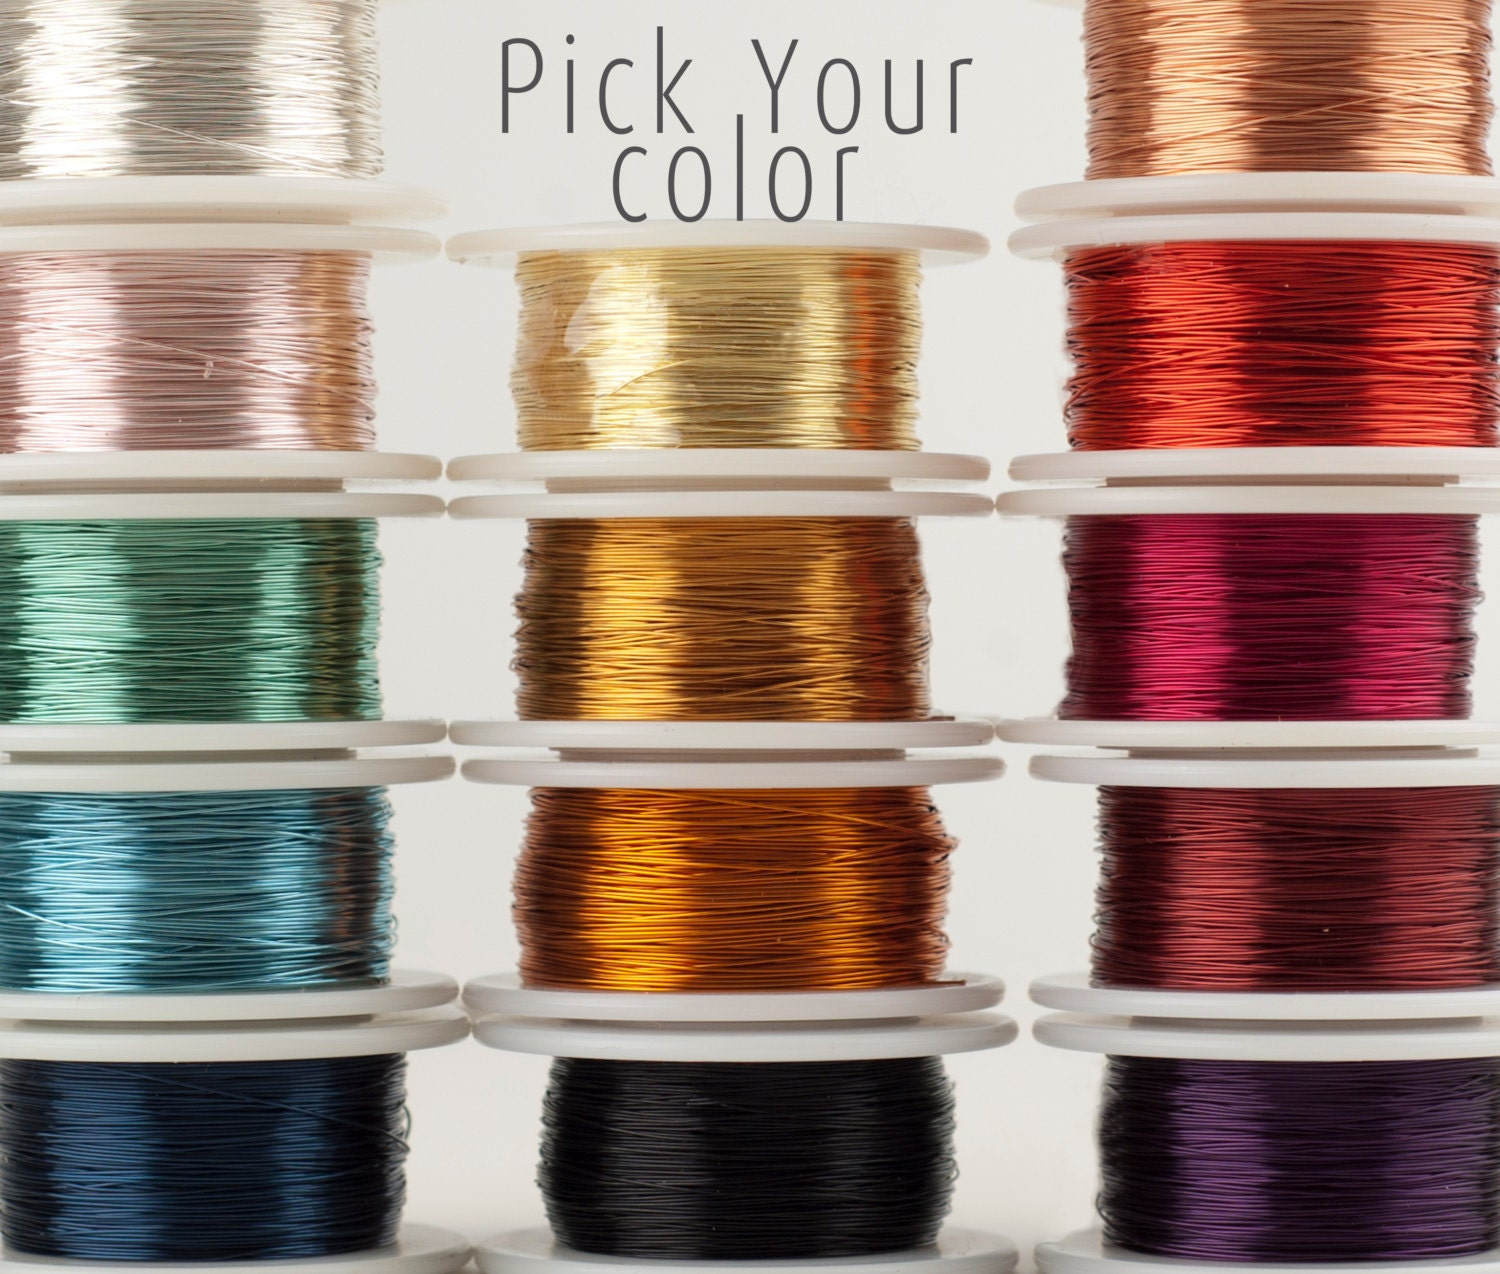 Craft Wire Pick Your Color Wire Crochet Supply 28 Gauge